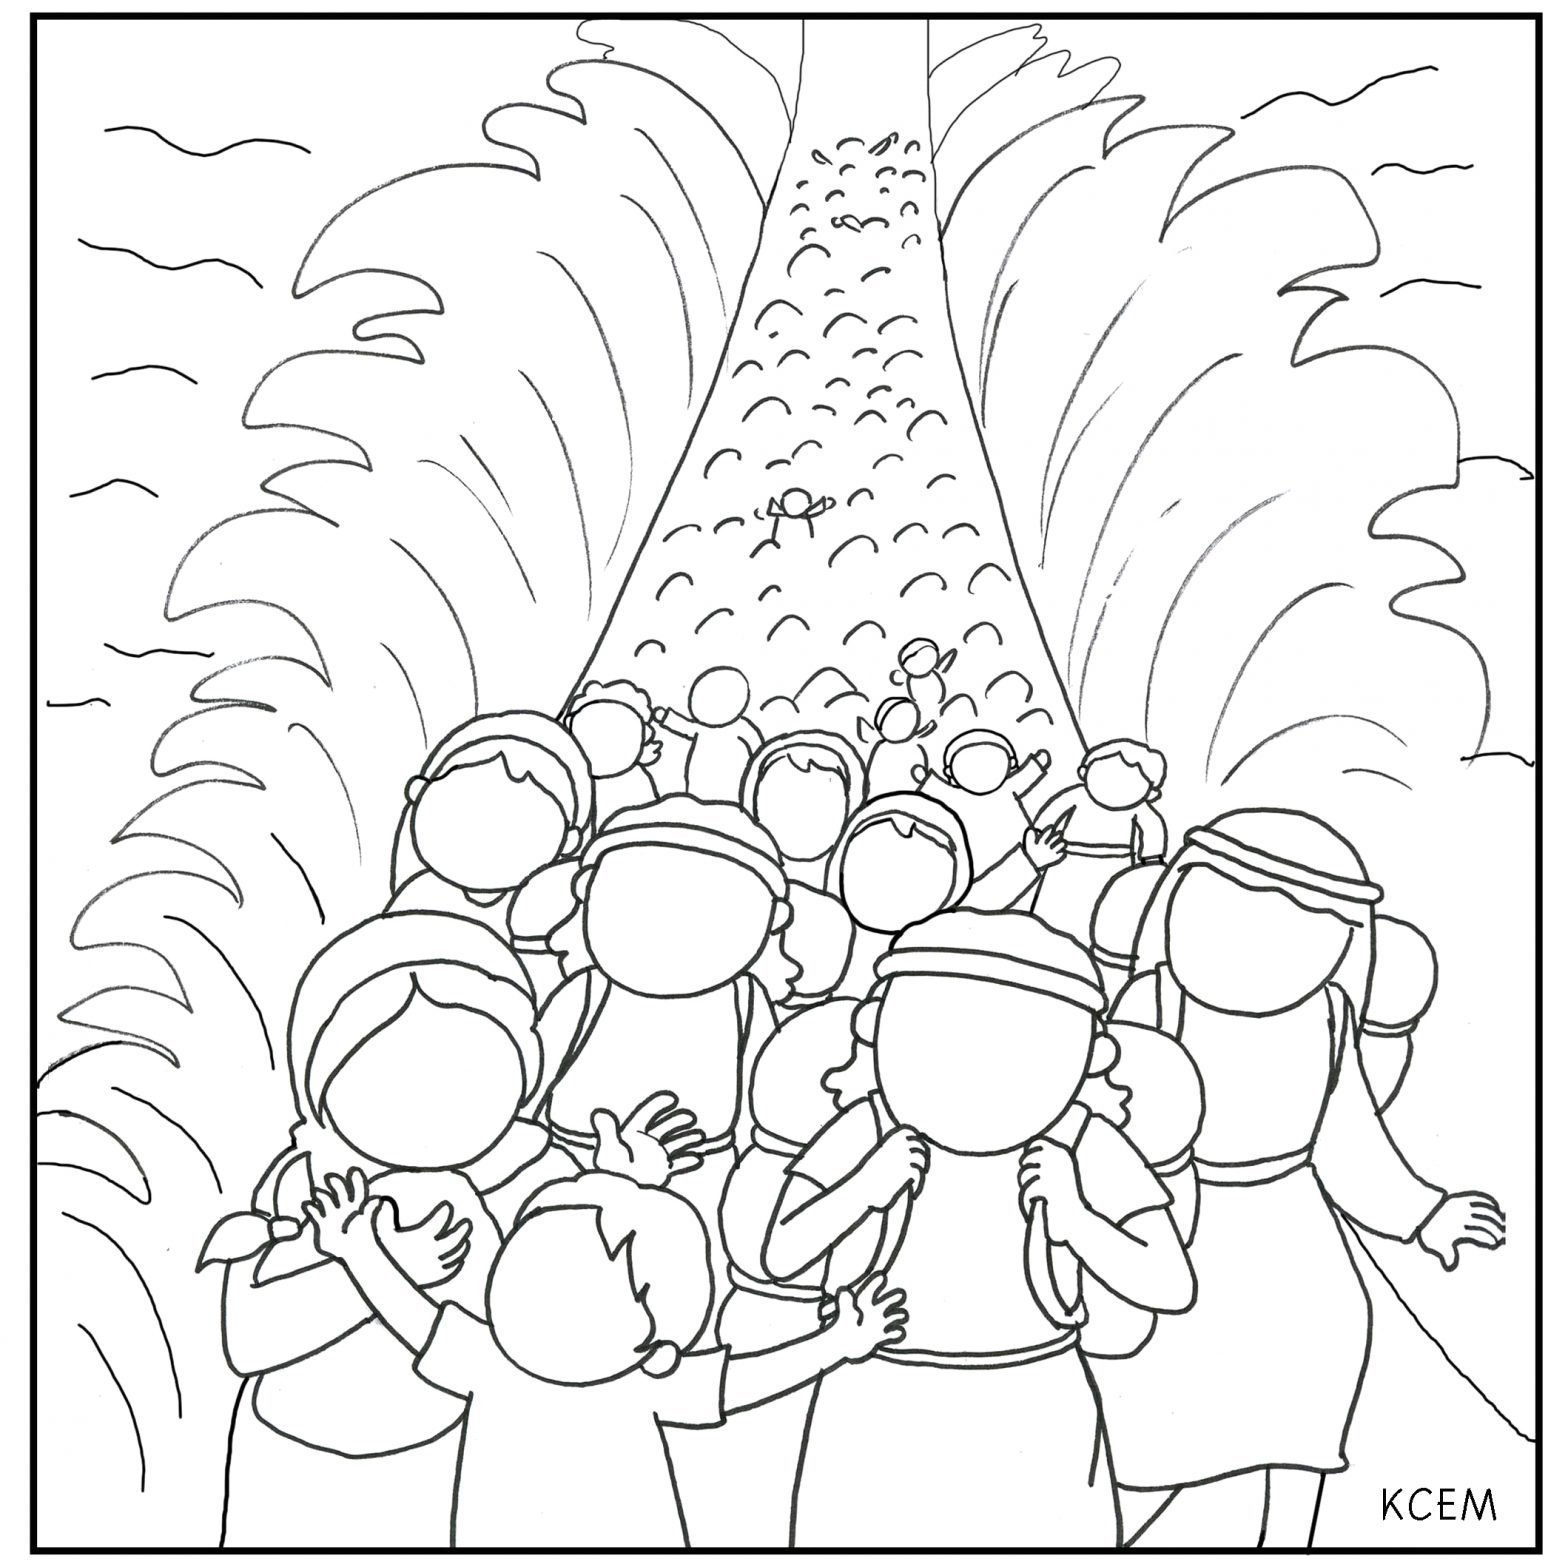 Free Coloring Page Moses Parting Red Sea Moses Parting the Red Sea Coloring Page Coloring Home